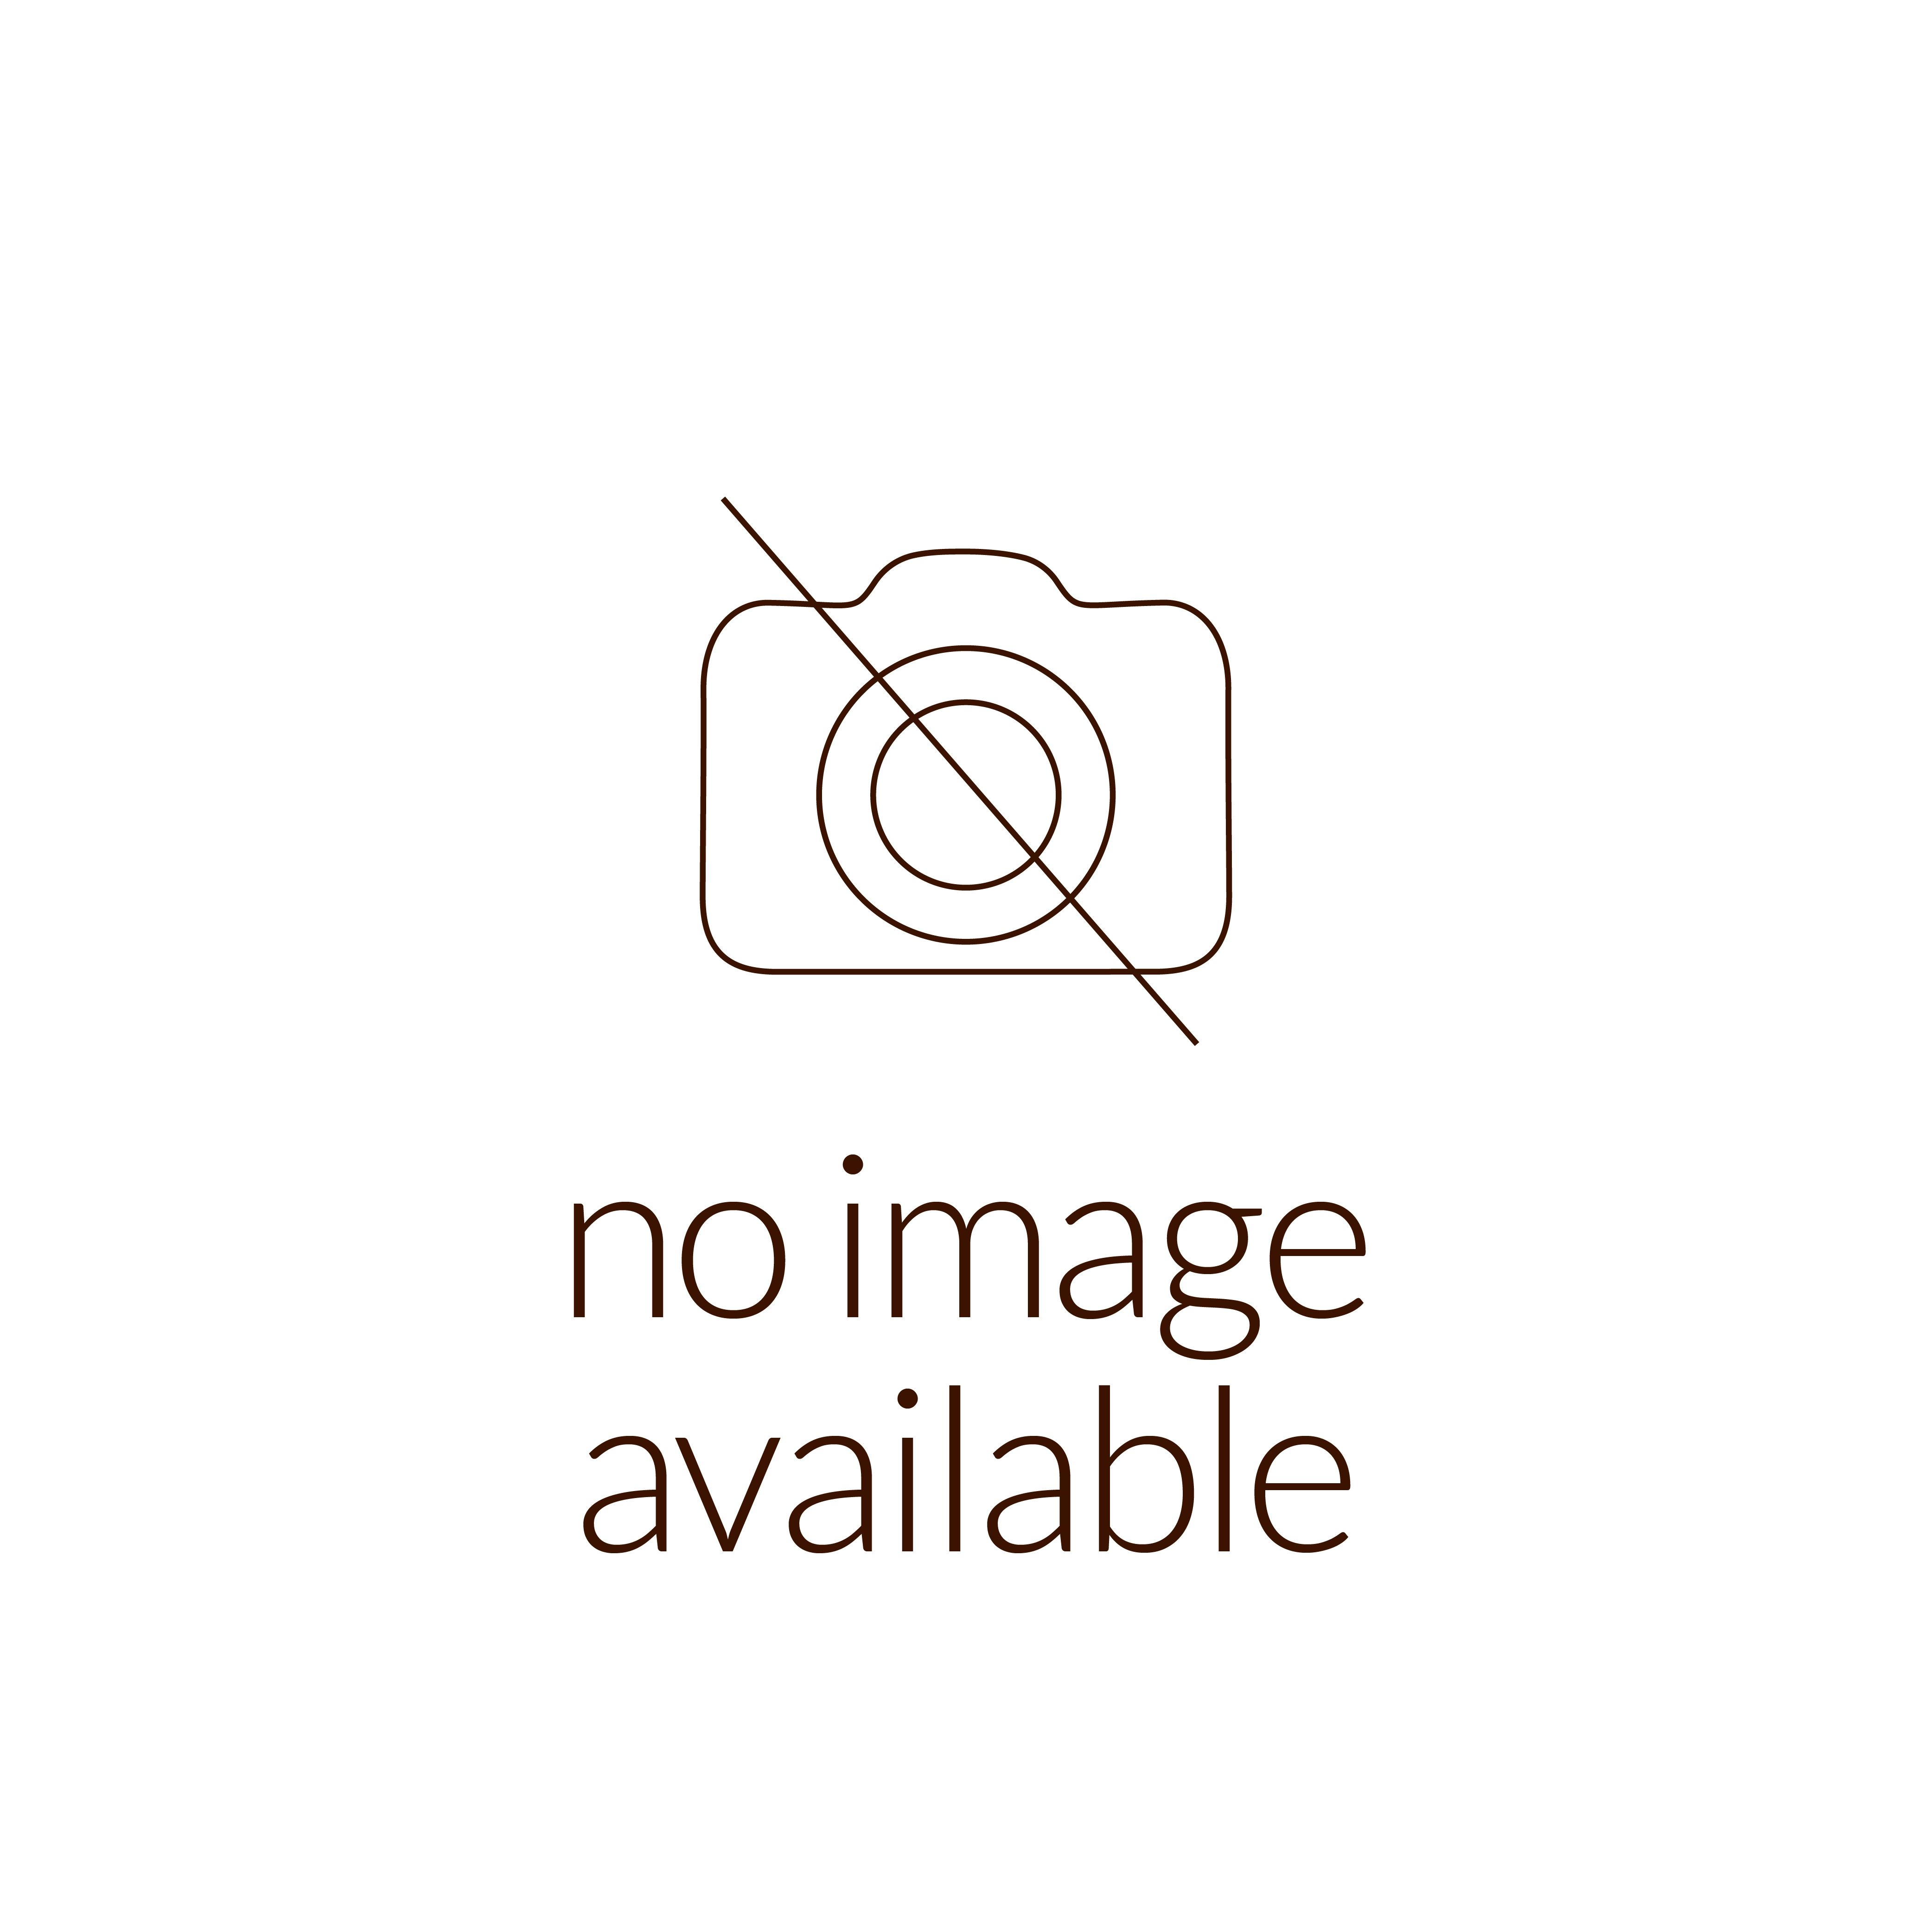 State Medal, Lion's Gate , Gold, 32 mm, 1 oz - Obverse